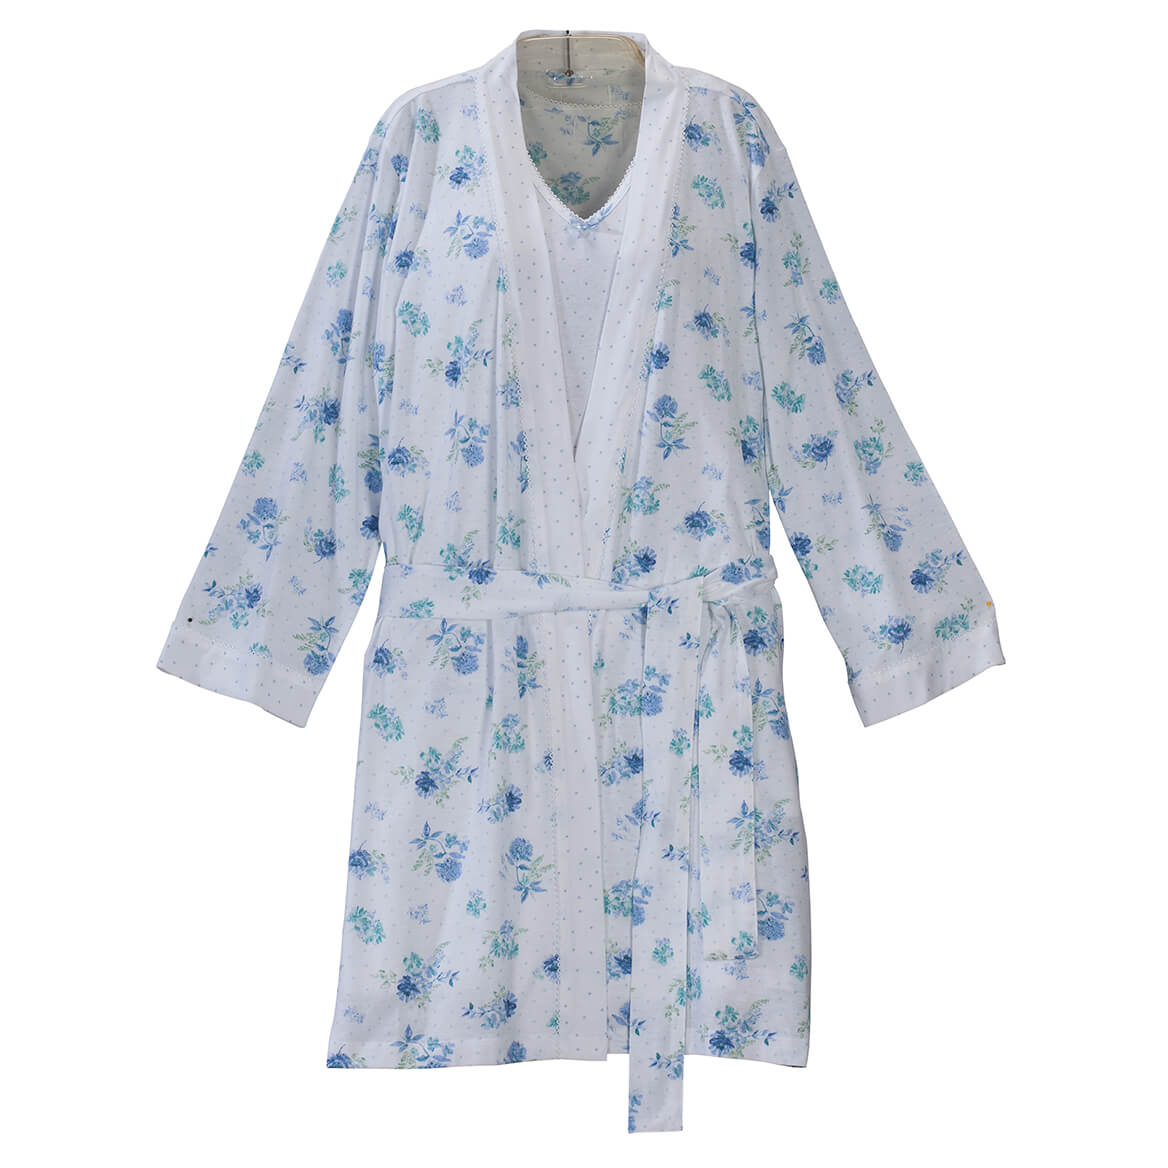 Enchanted Polka Dot Robe/Chemise Set by Sawyer Creek-366750